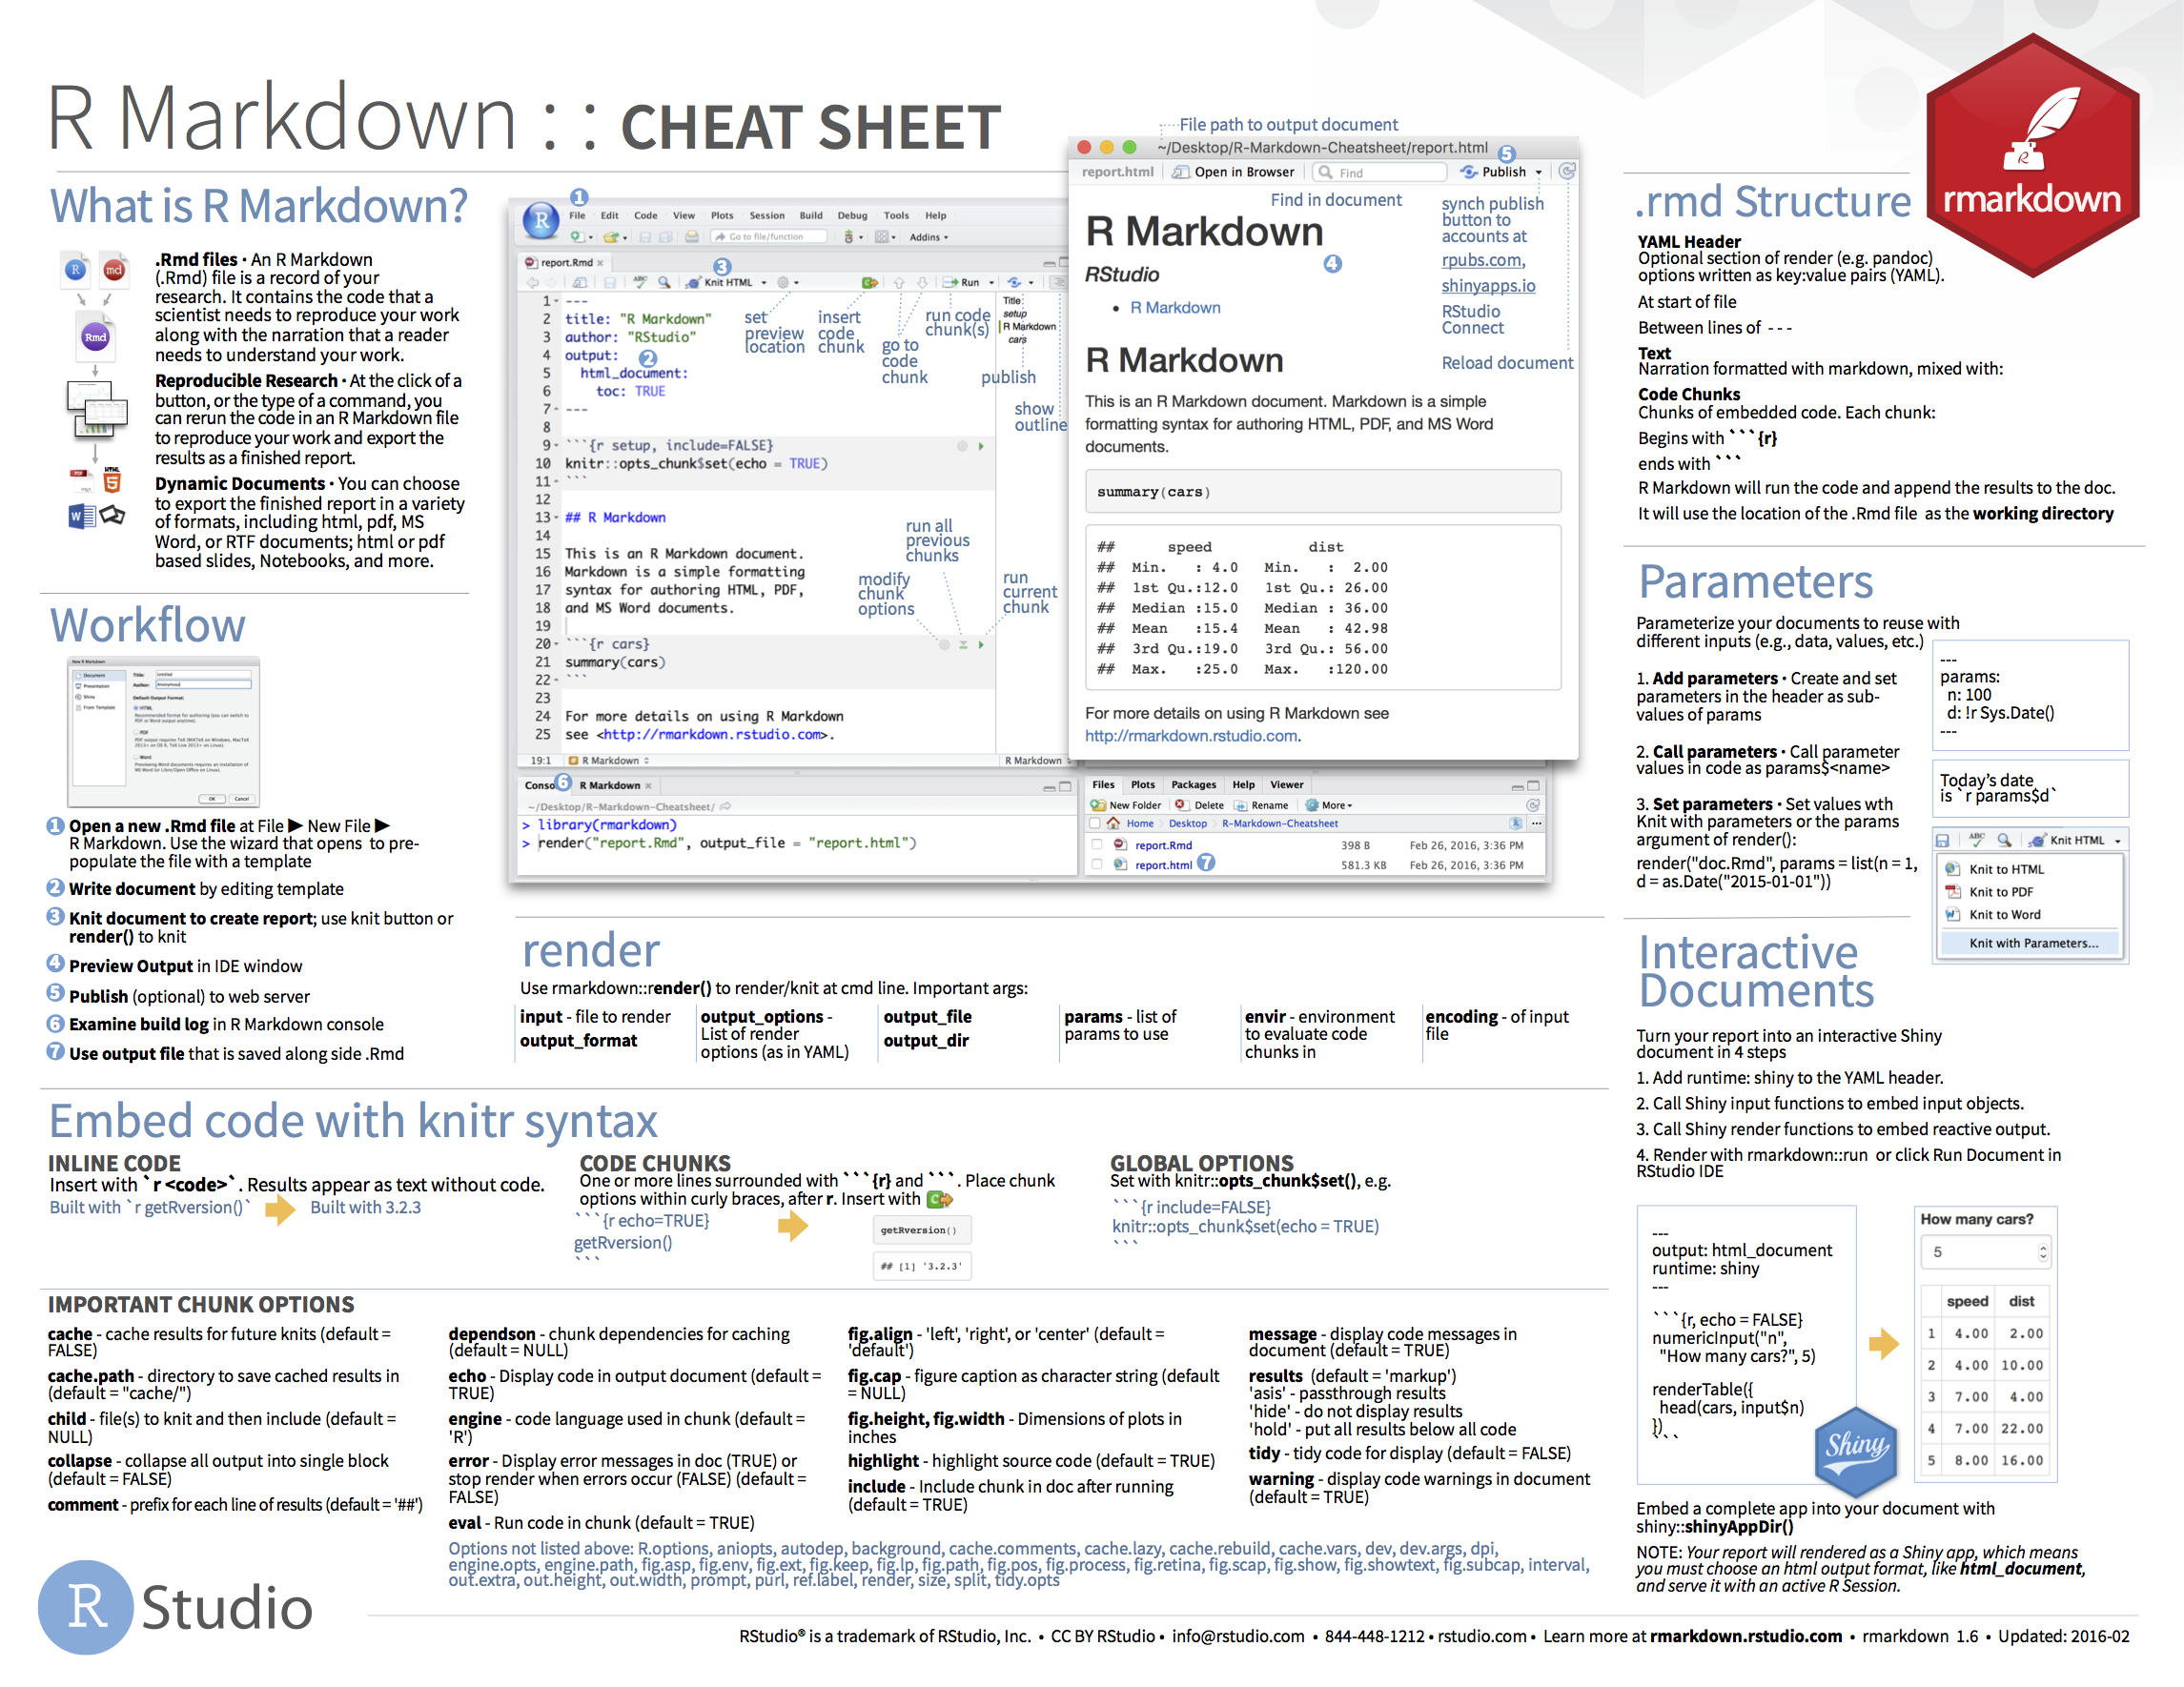 Shiny - The R Markdown Cheat sheet | Cheat sheets in 2019